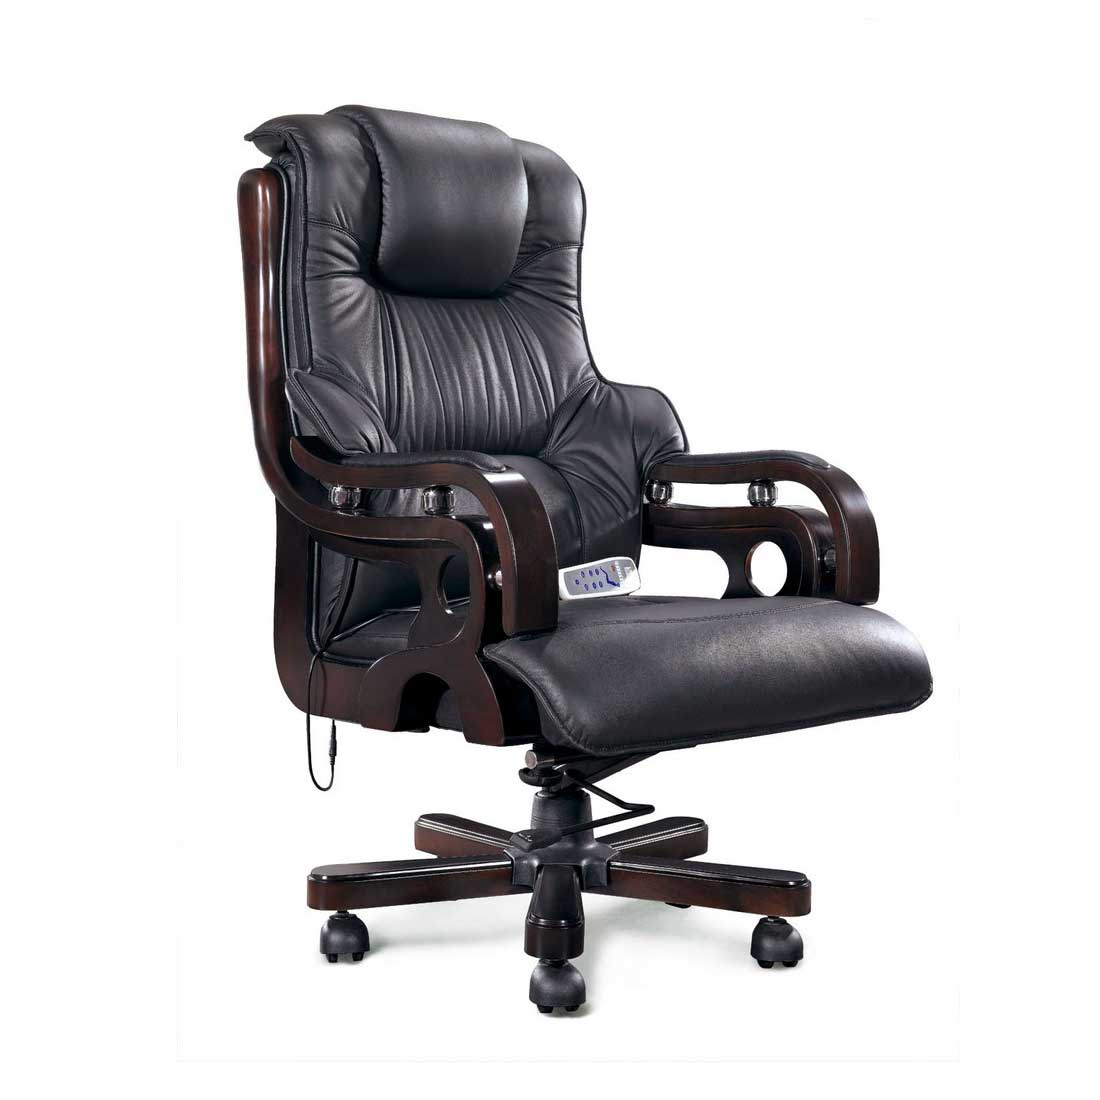 High back classic executive office chairs